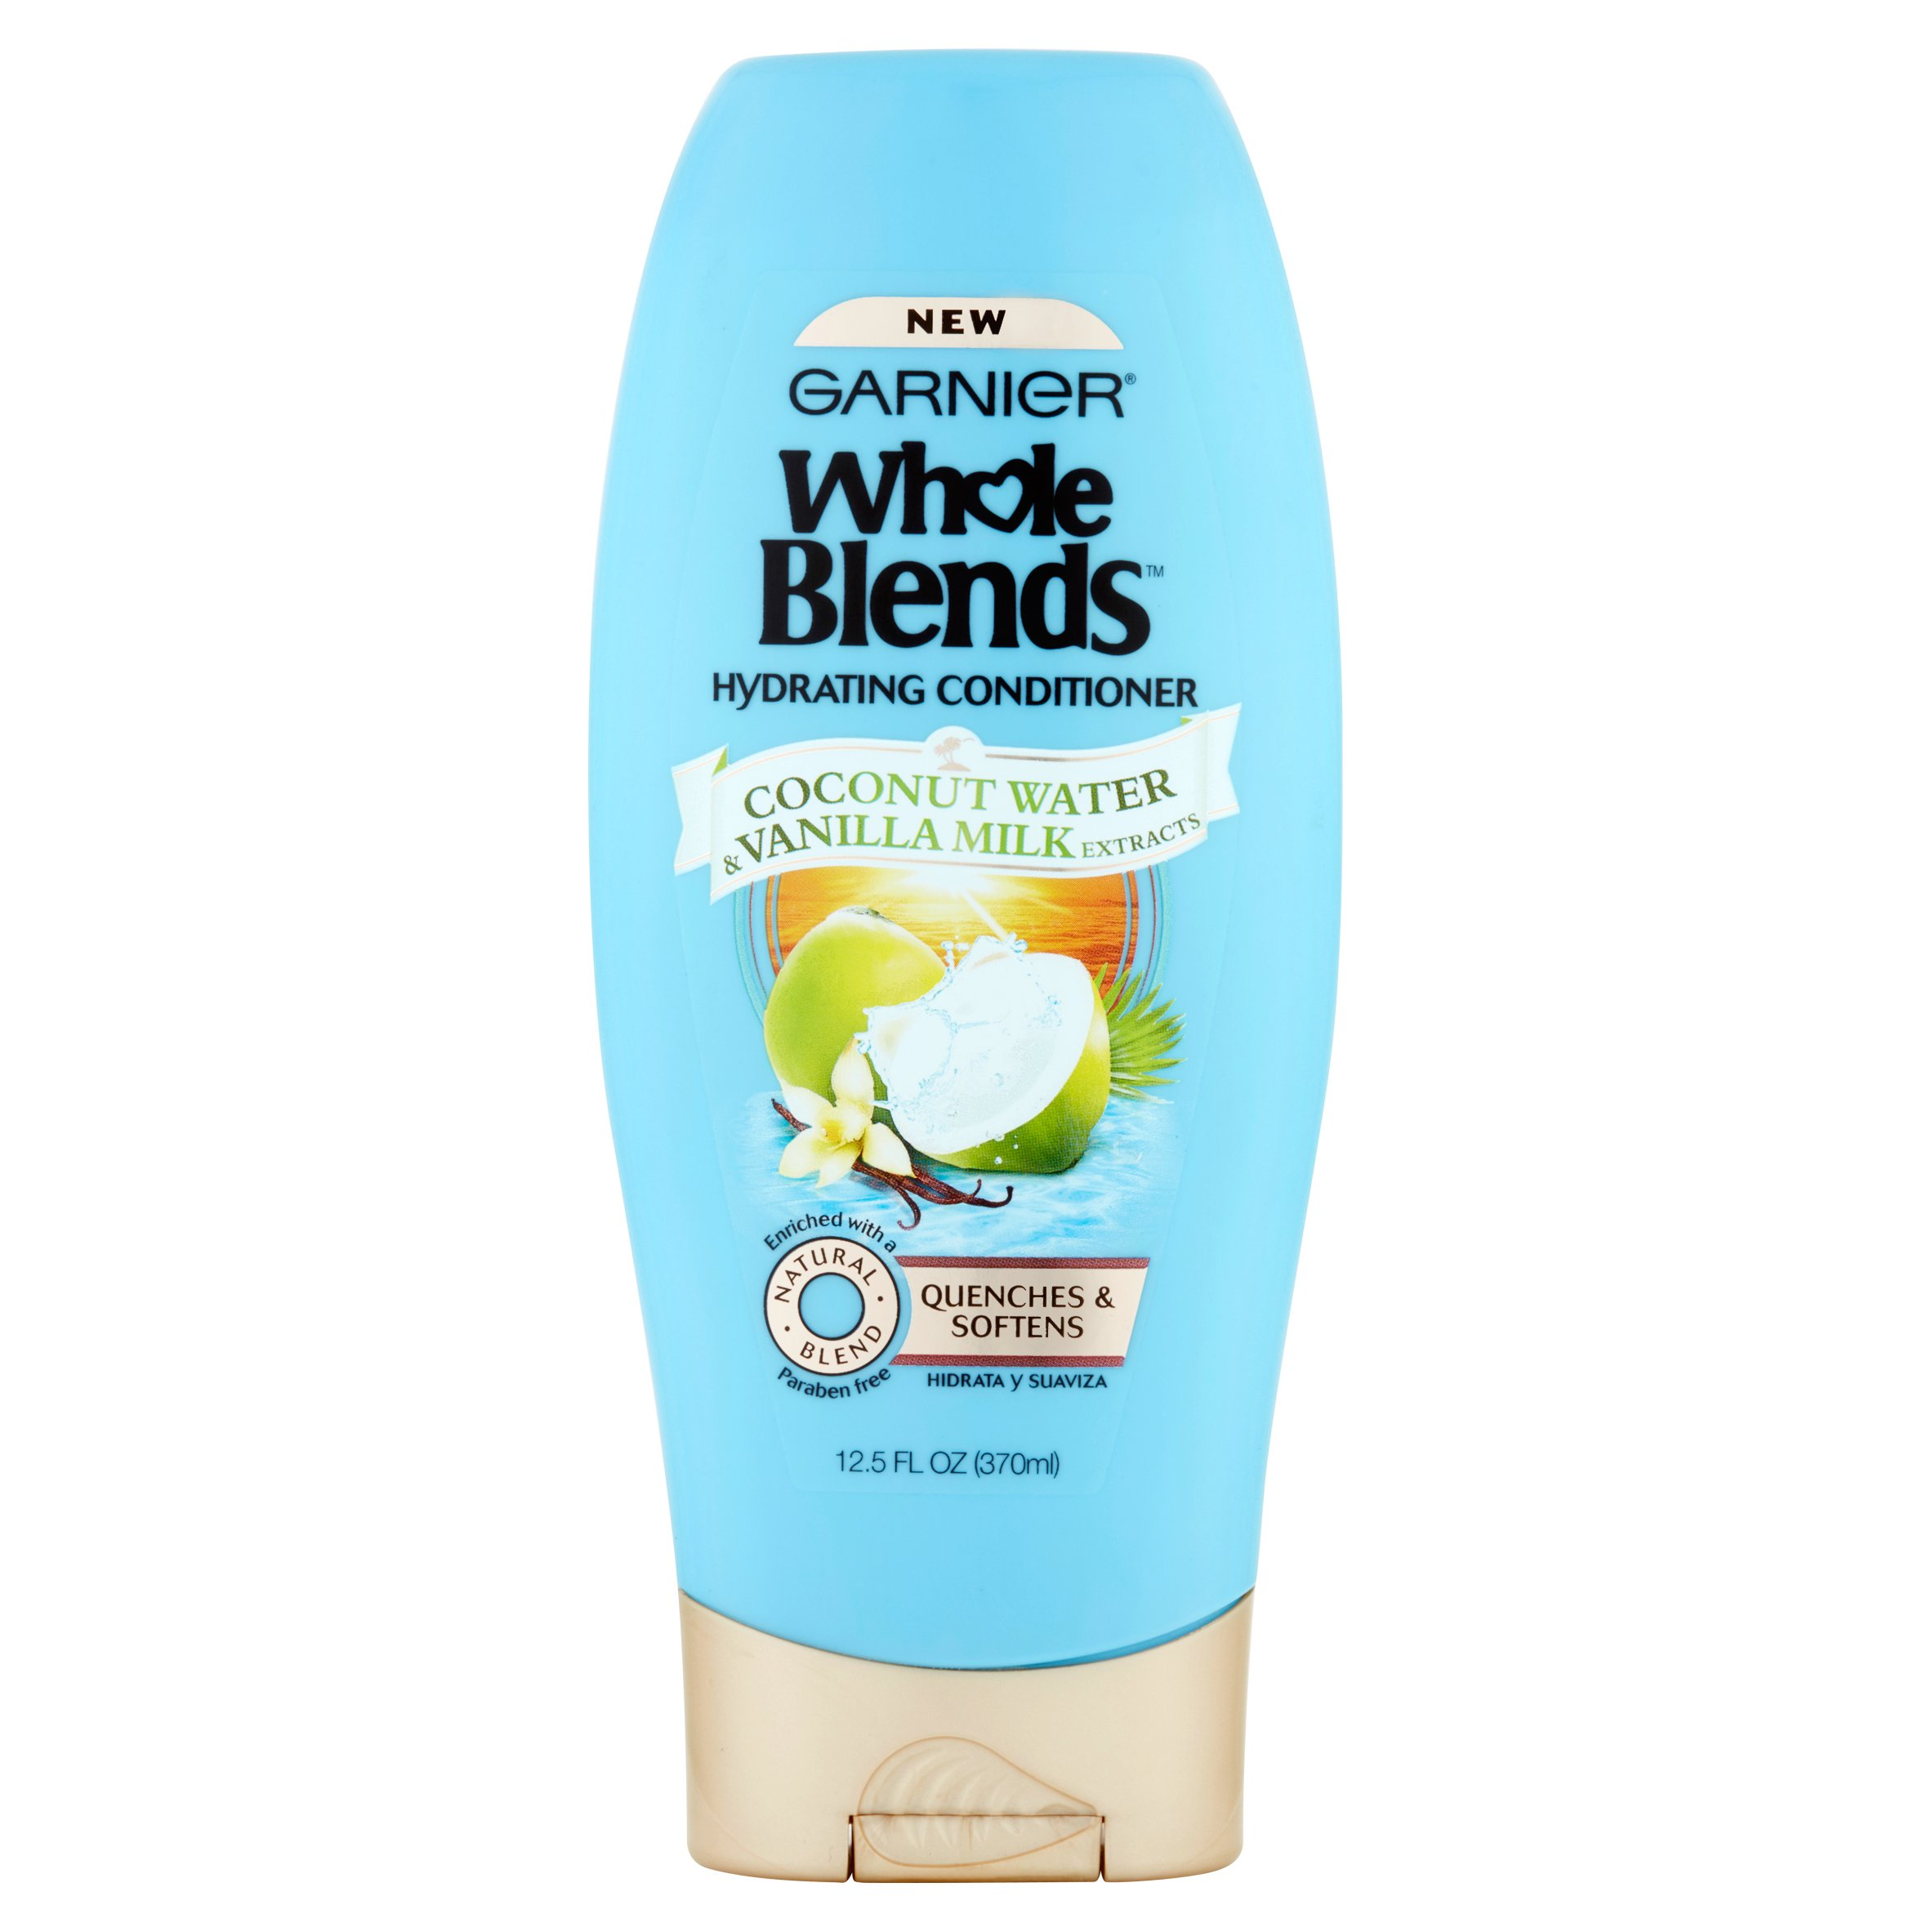 Garnier Whole Blends Conditioner with Coconut Water & Vanilla Milk Extracts 12.5 FL OZ